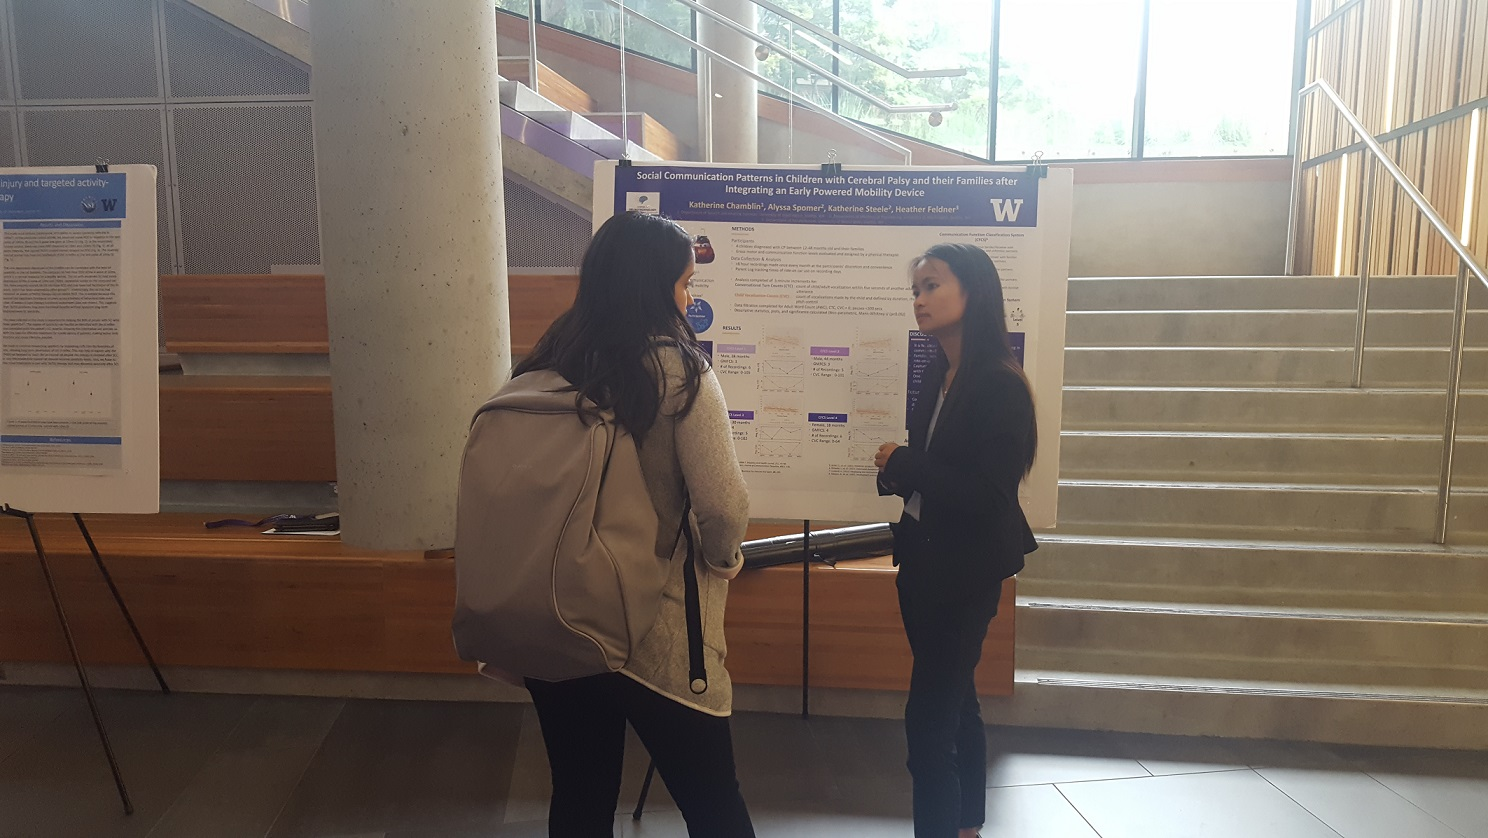 Sun shinning down on young woman in business attire talking to another woman in front of a white and purple poster board